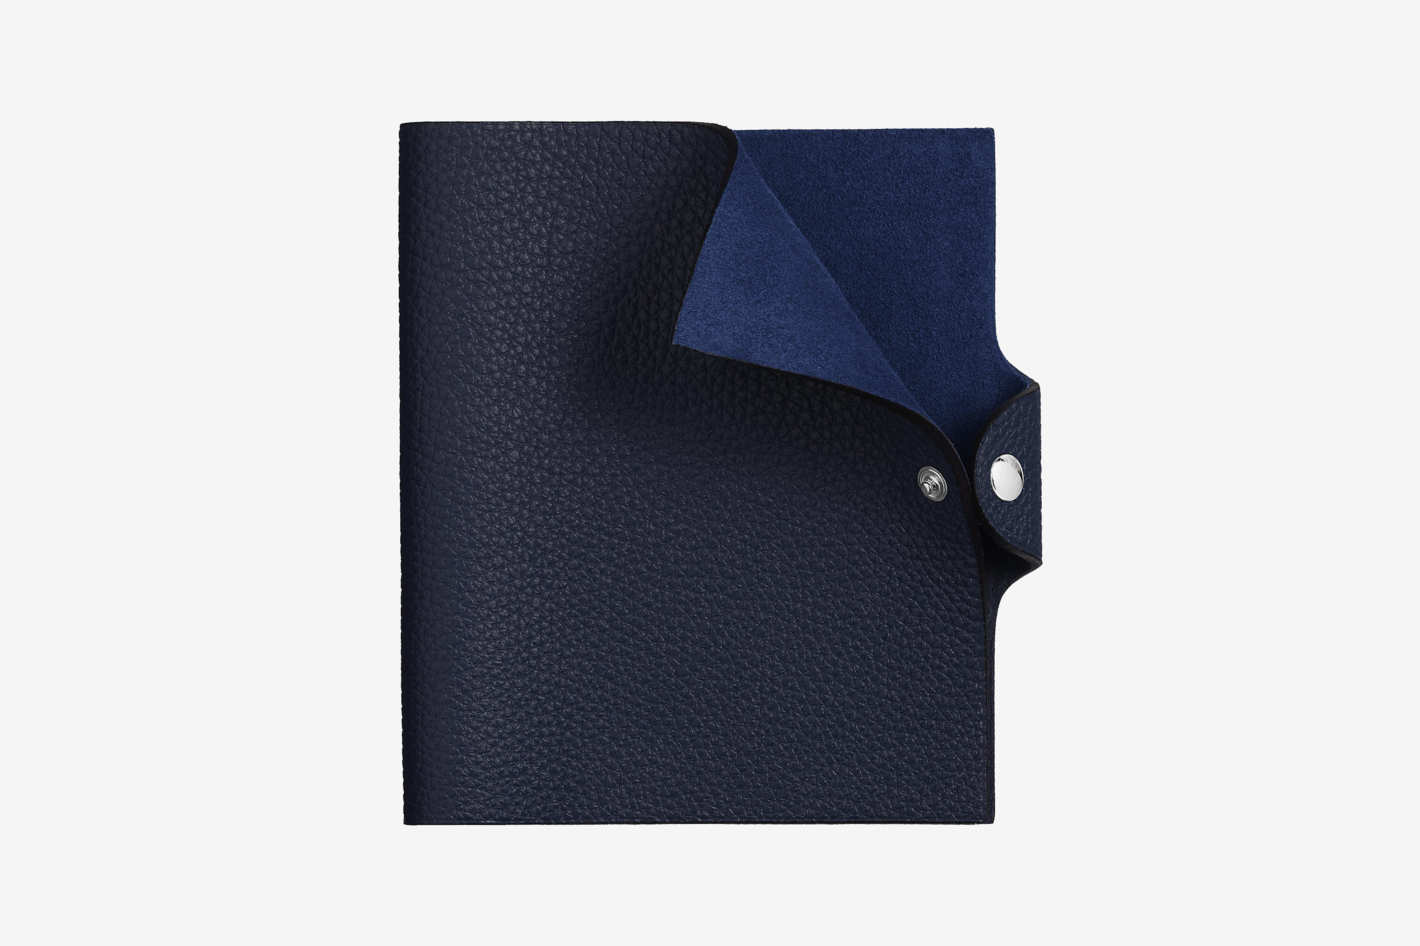 Ulysse Notebook Cover, Small Model in Bleu Nuit